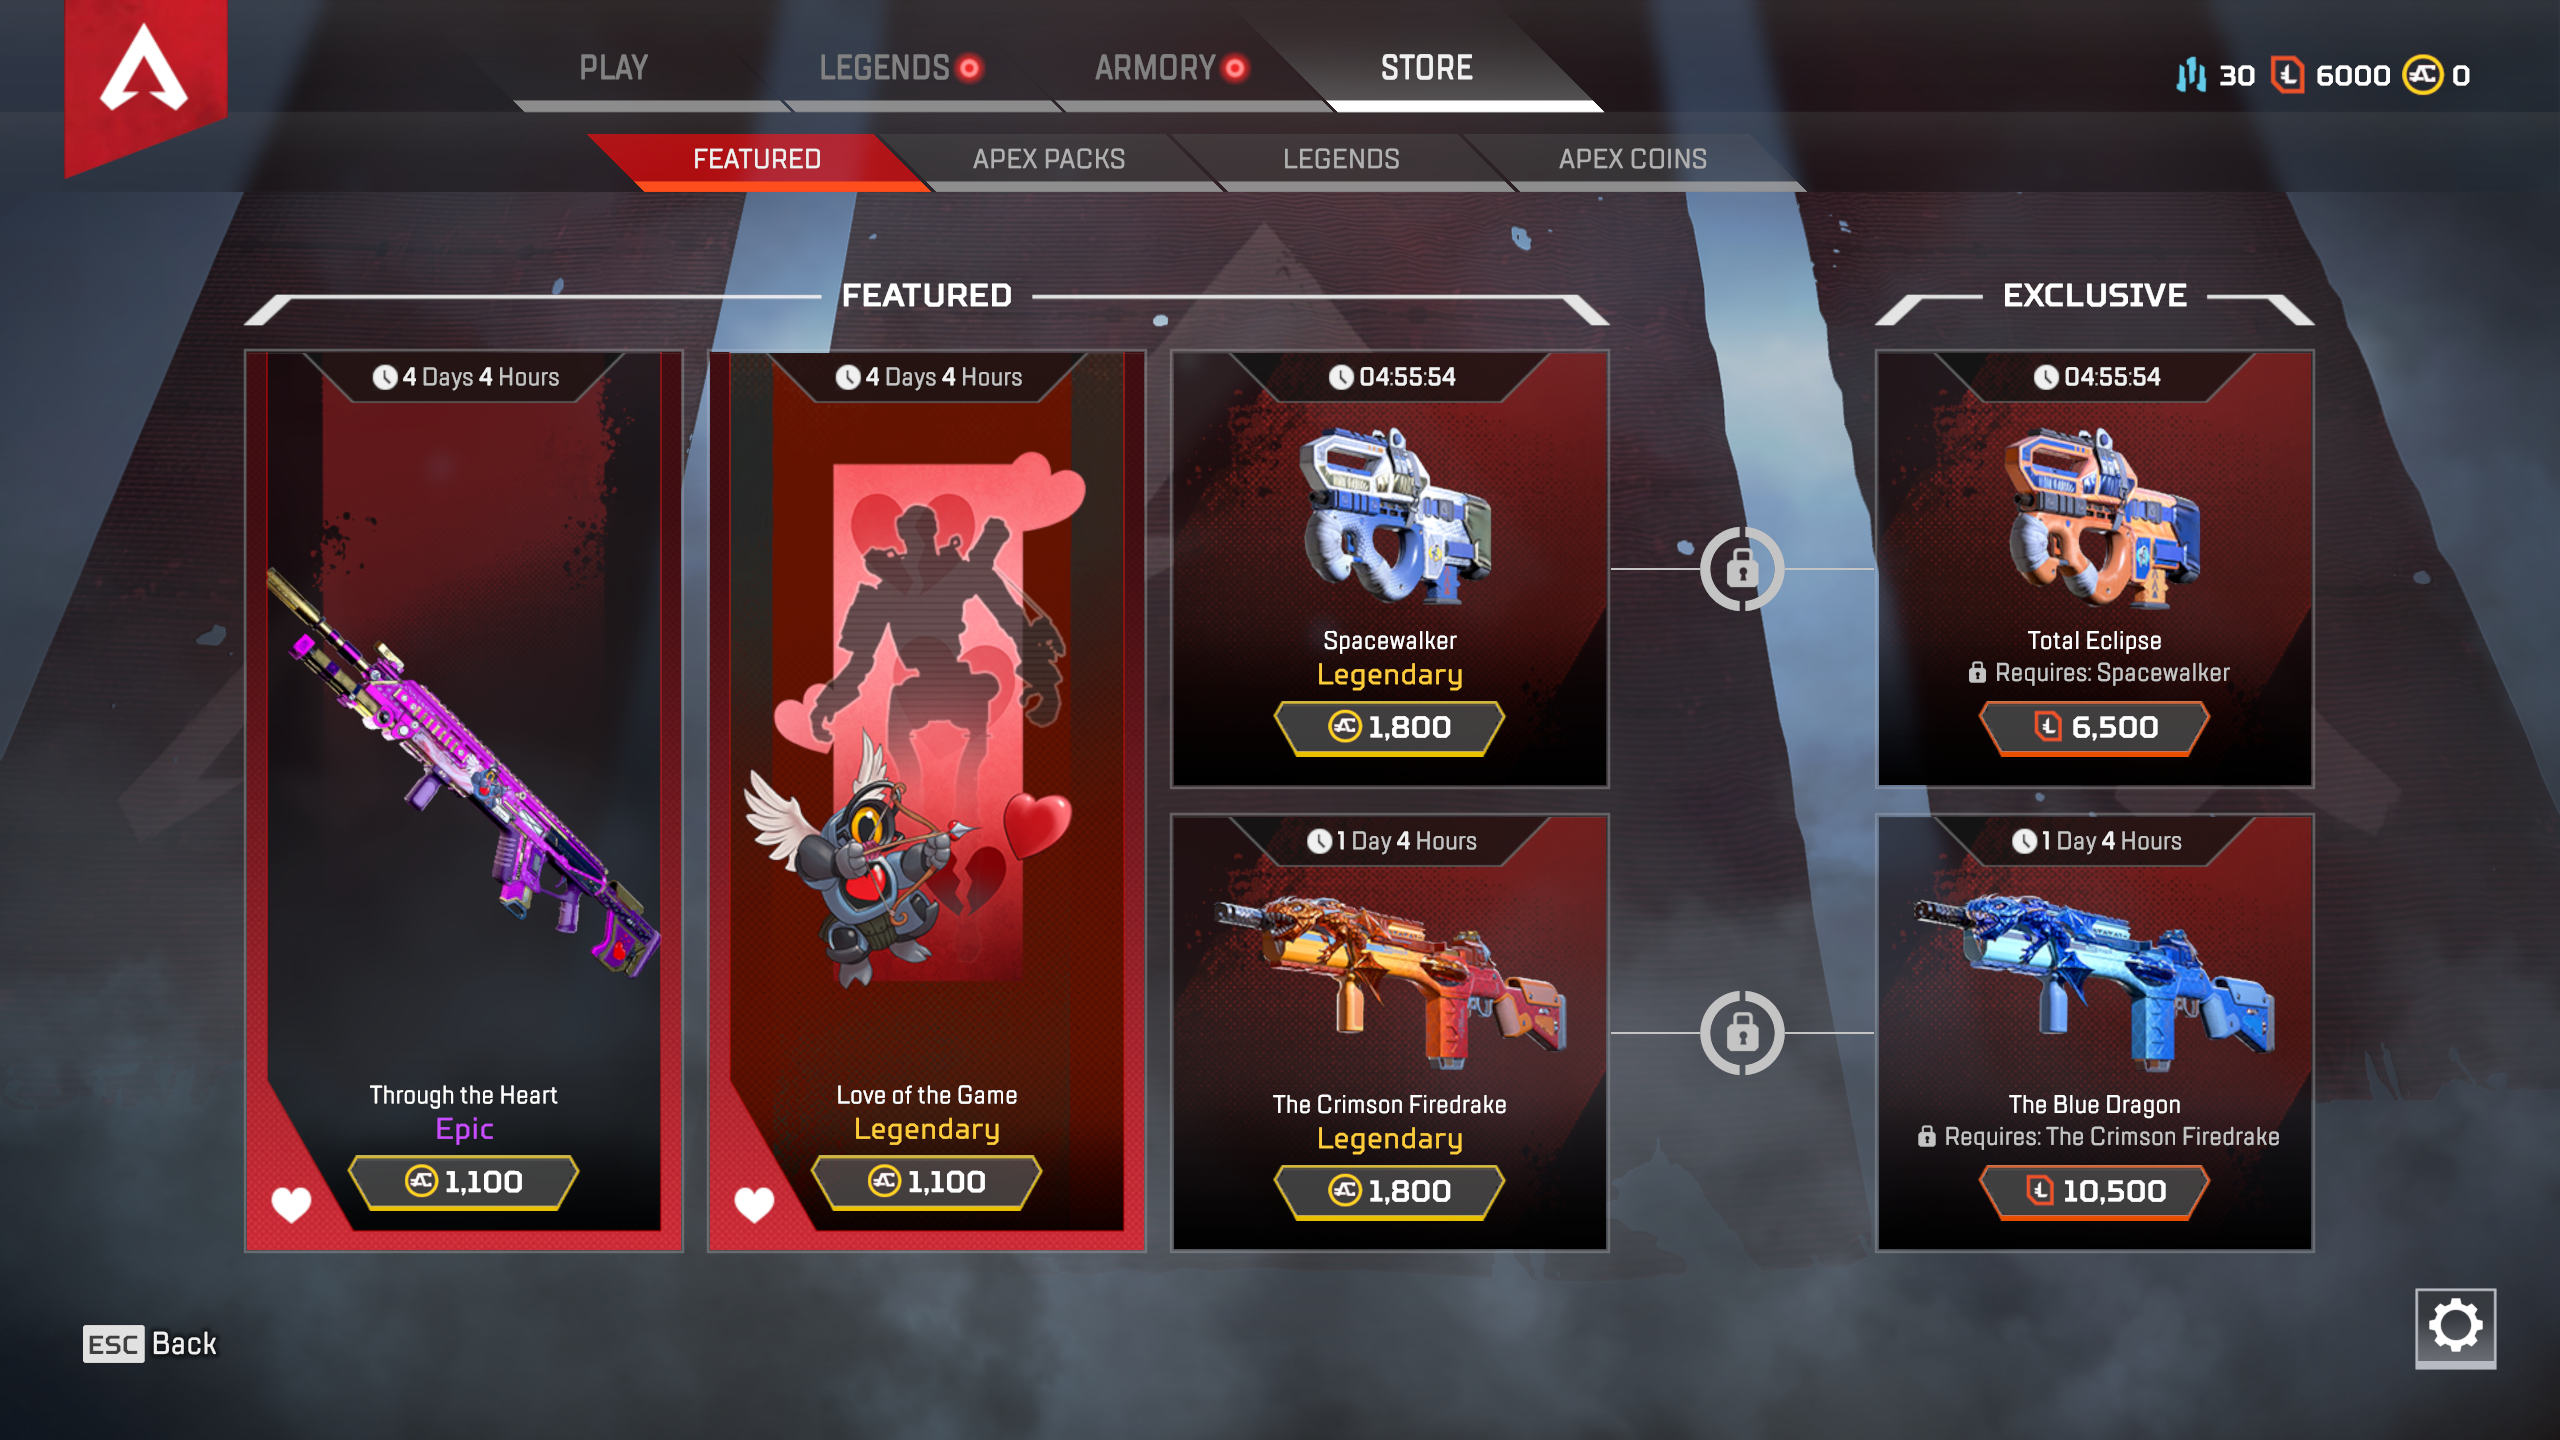 The New Apex Legends Skin Prices Are Too Damn High